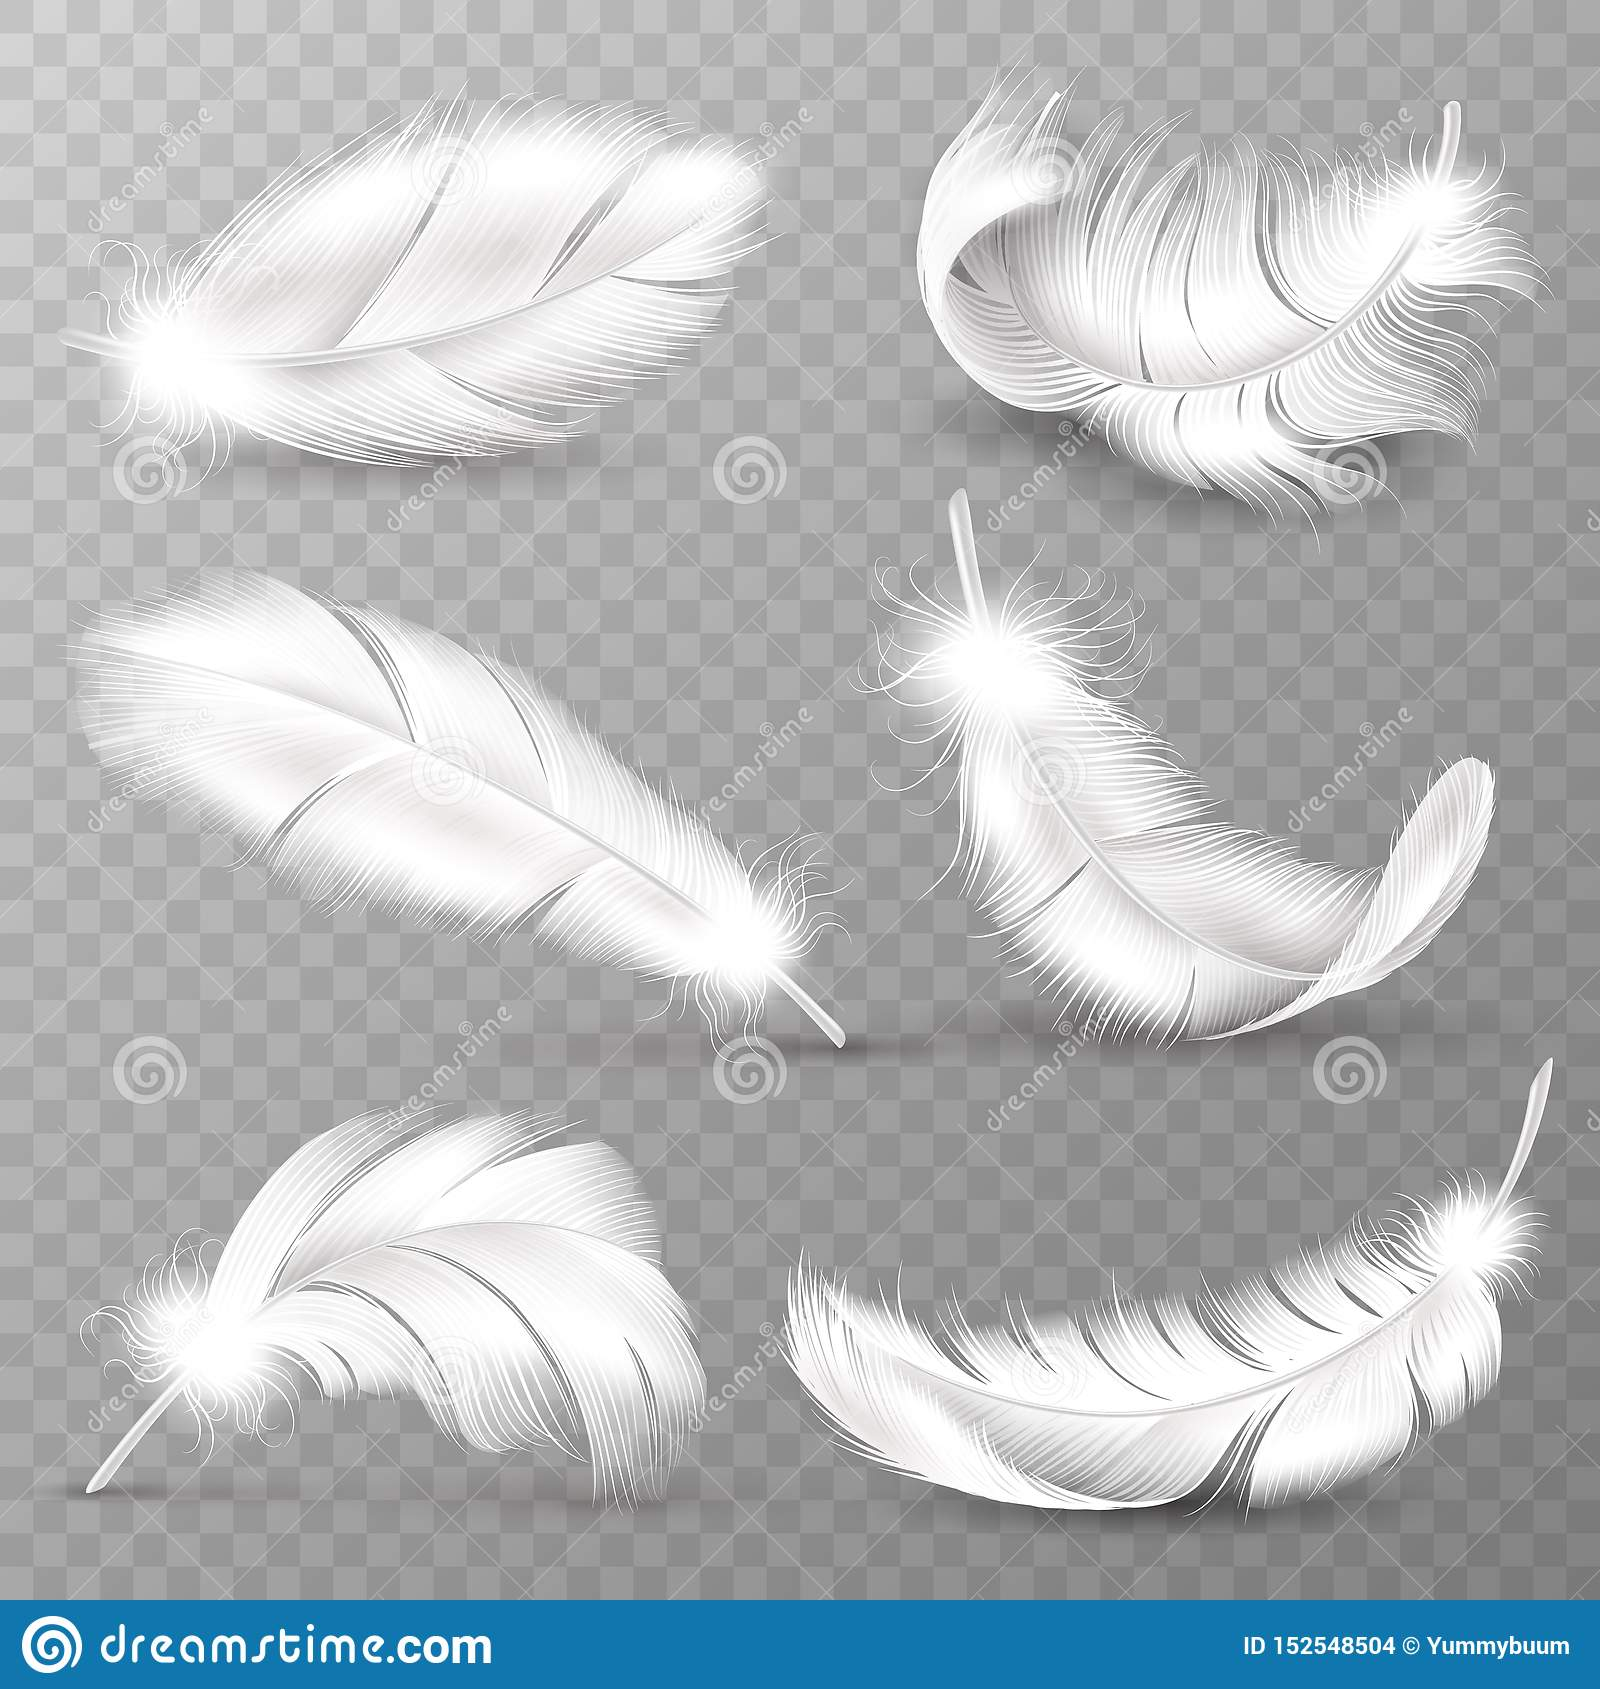 Realistic white feathers. Birds plumage, falling fluffy twirled feather, flying angel wings feathers. Realistic isolated